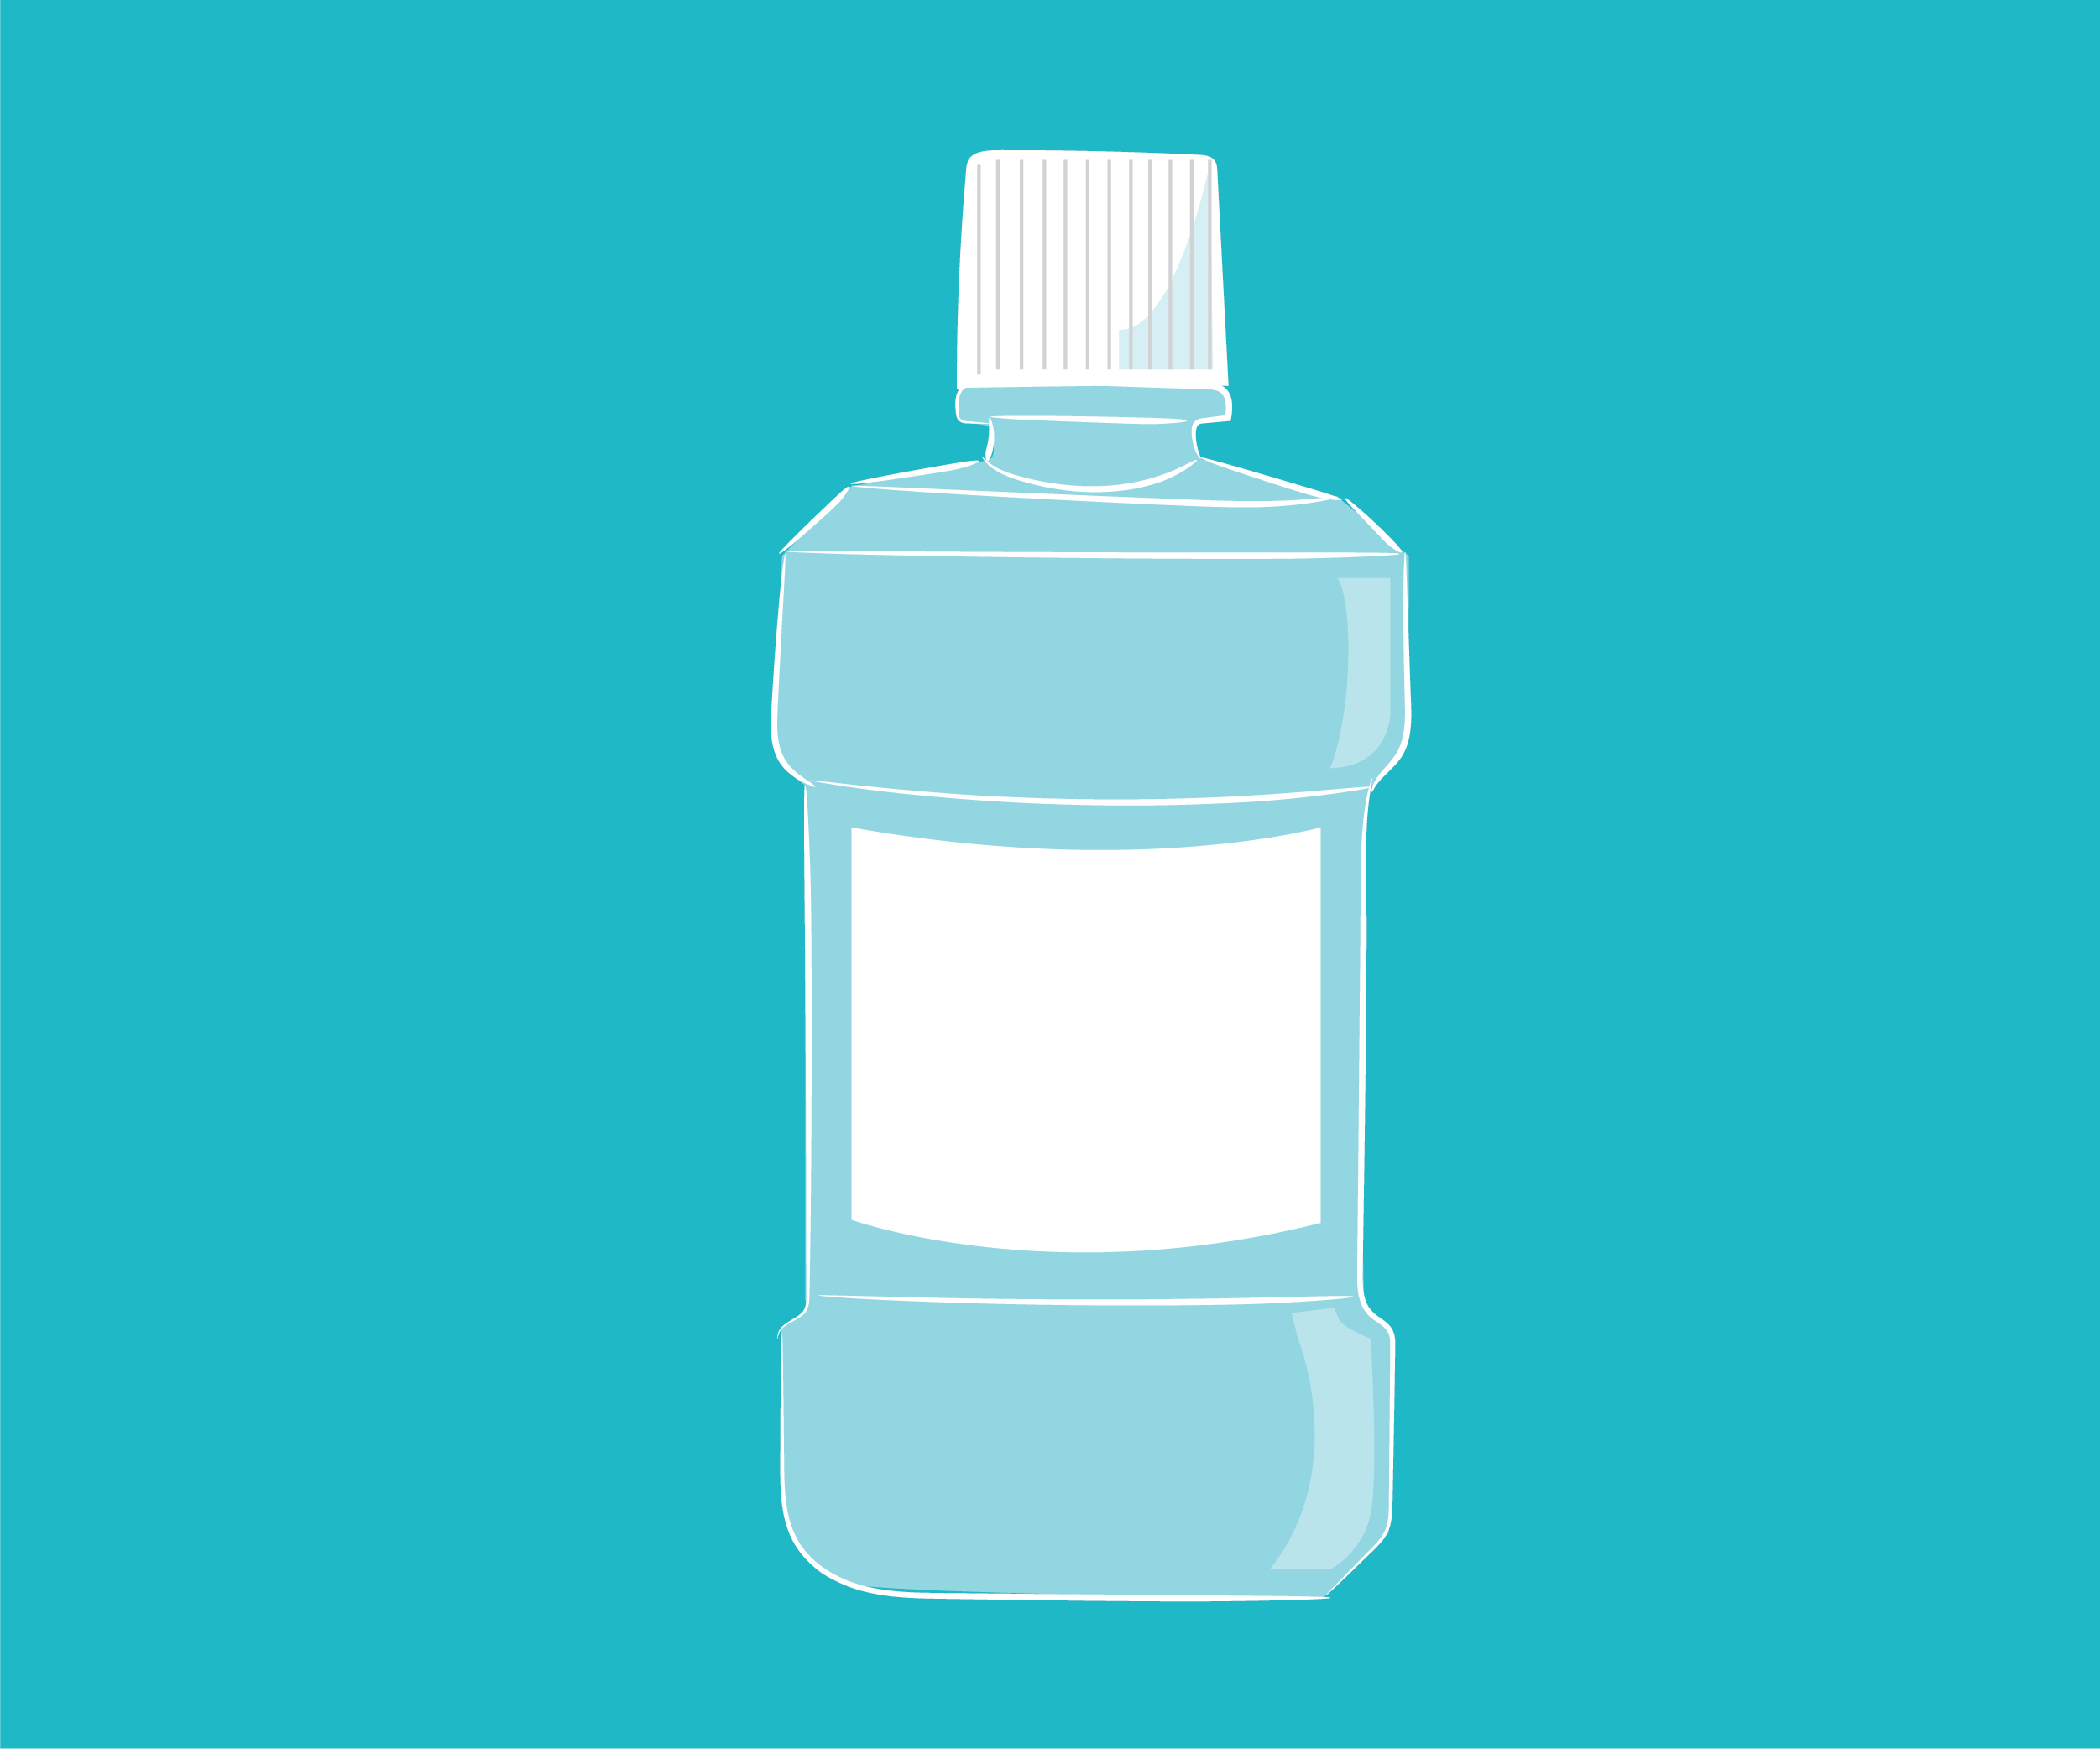 graphic of a bottle of mouthwash